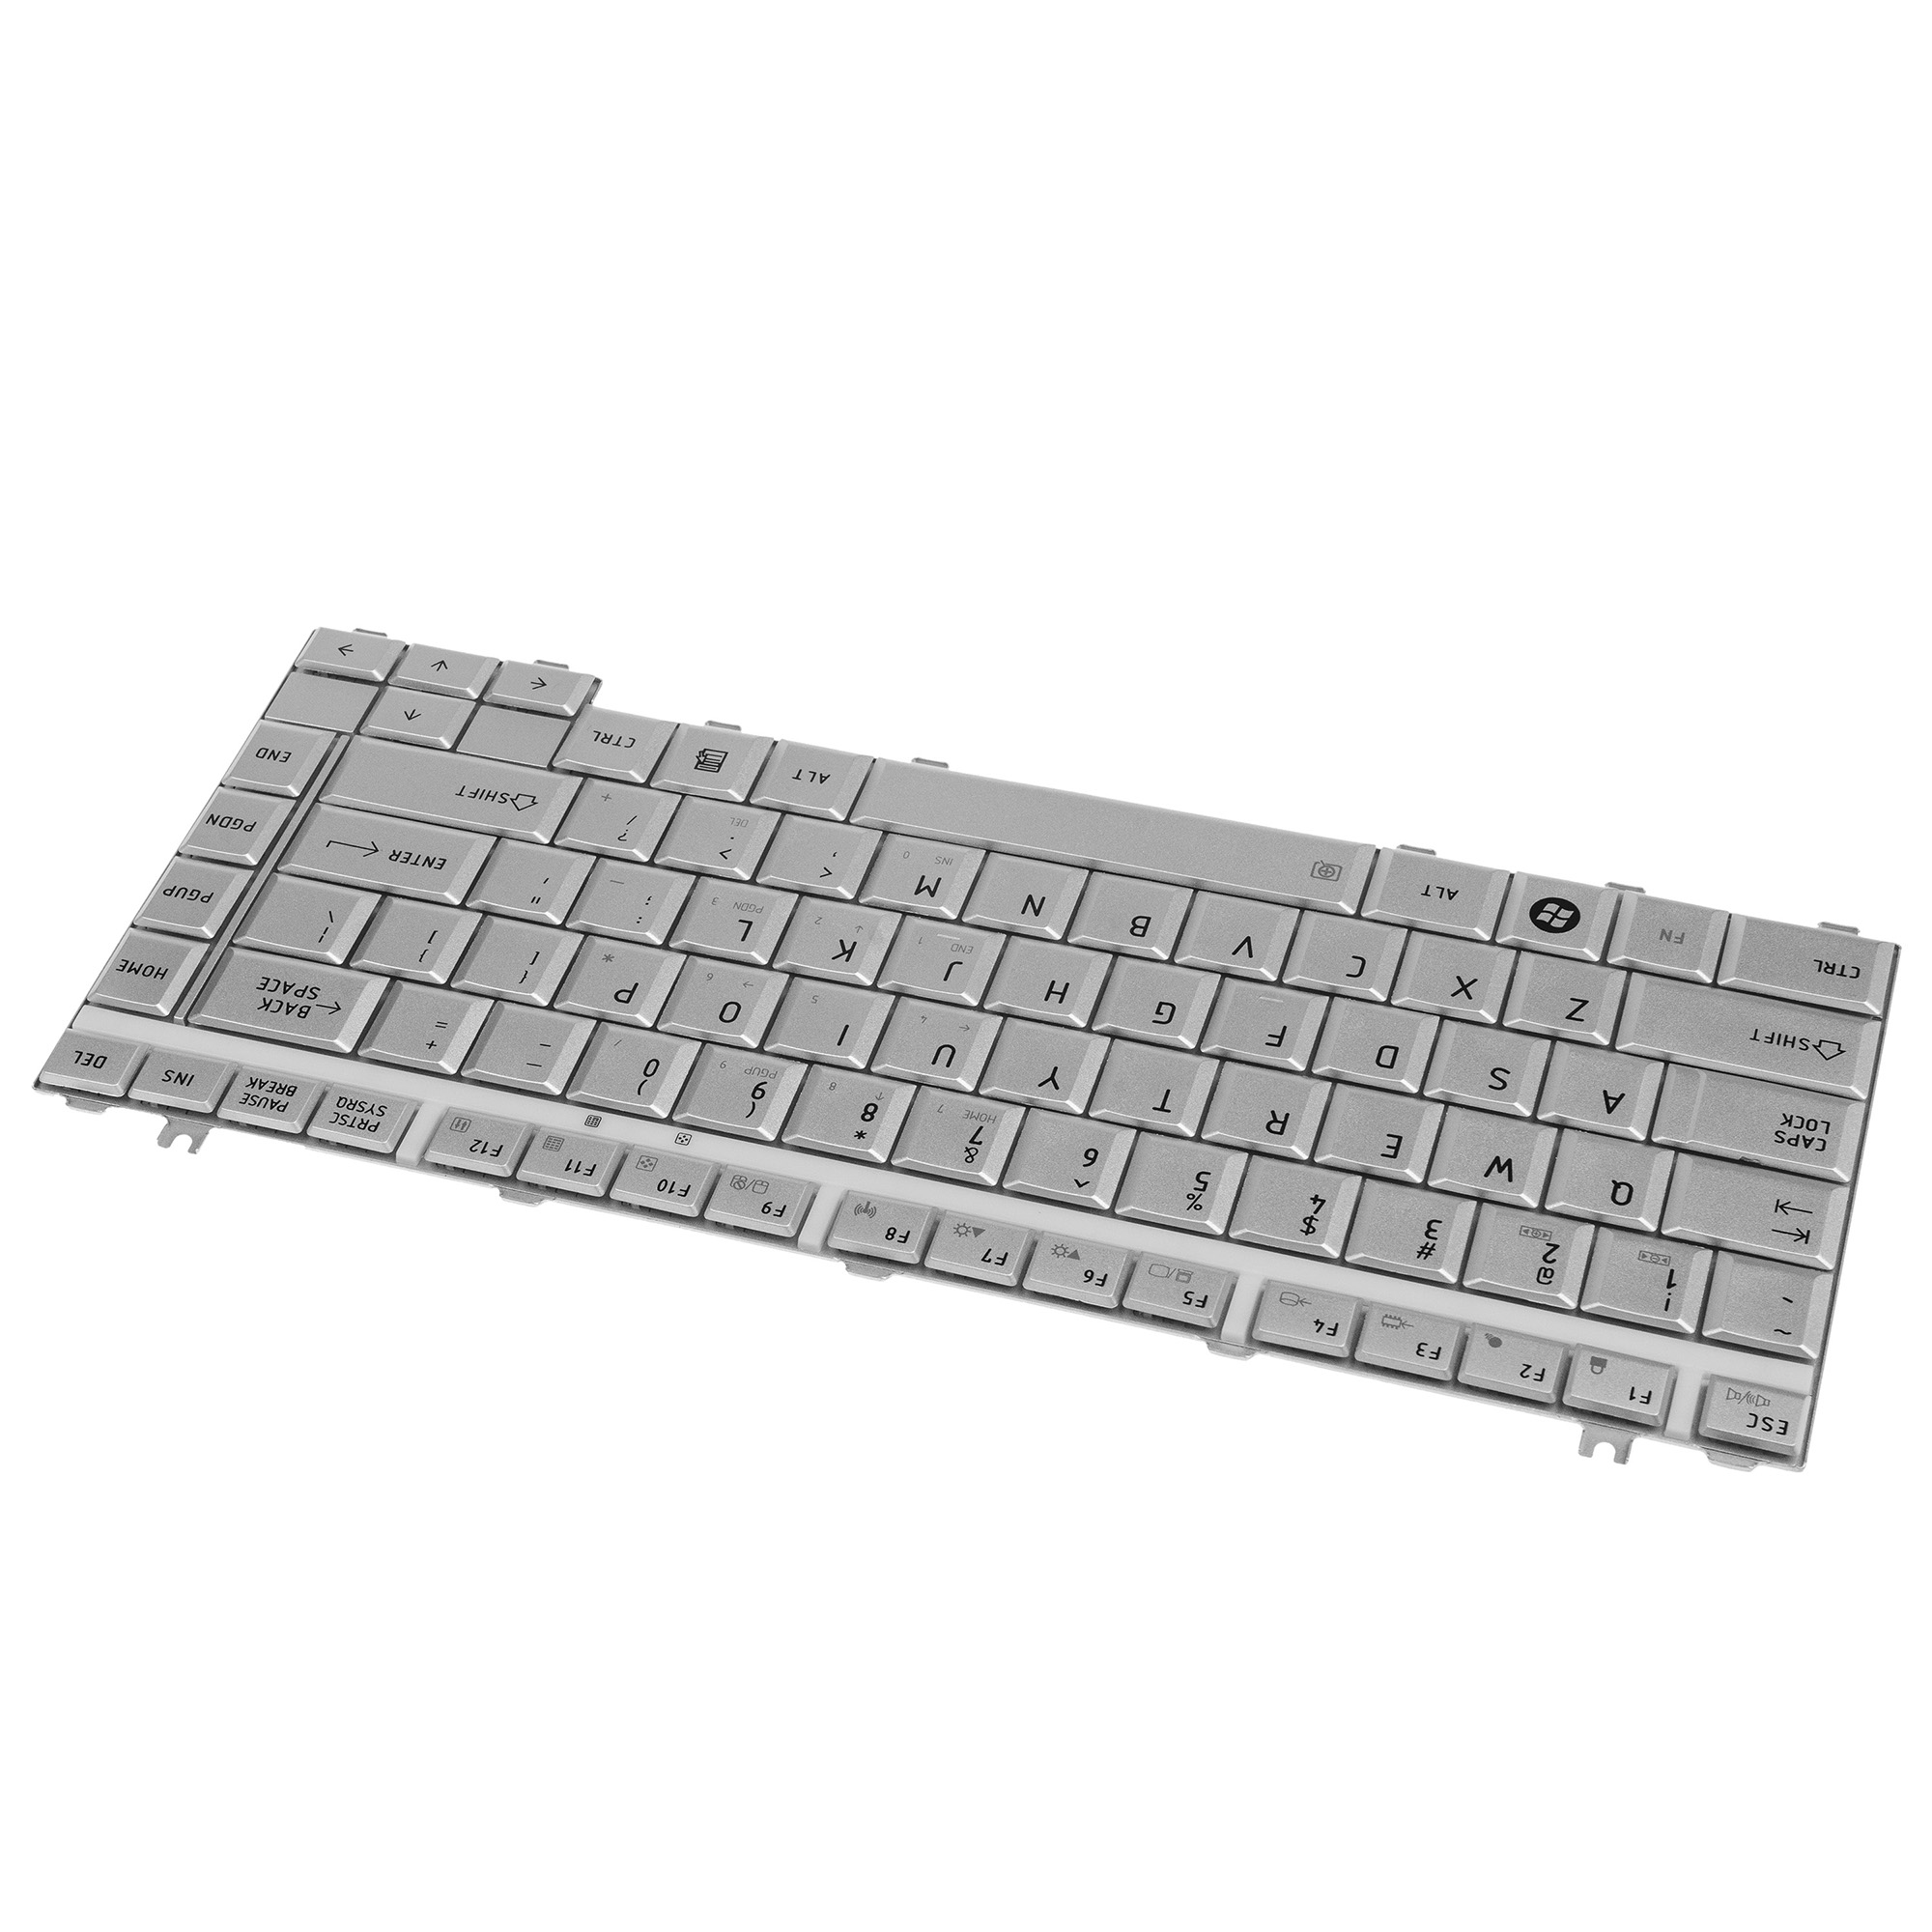 Clavier-pour-Ordinateur-Toshiba-Satellite-Pro-A210-1AZ-QWERTY-US-English